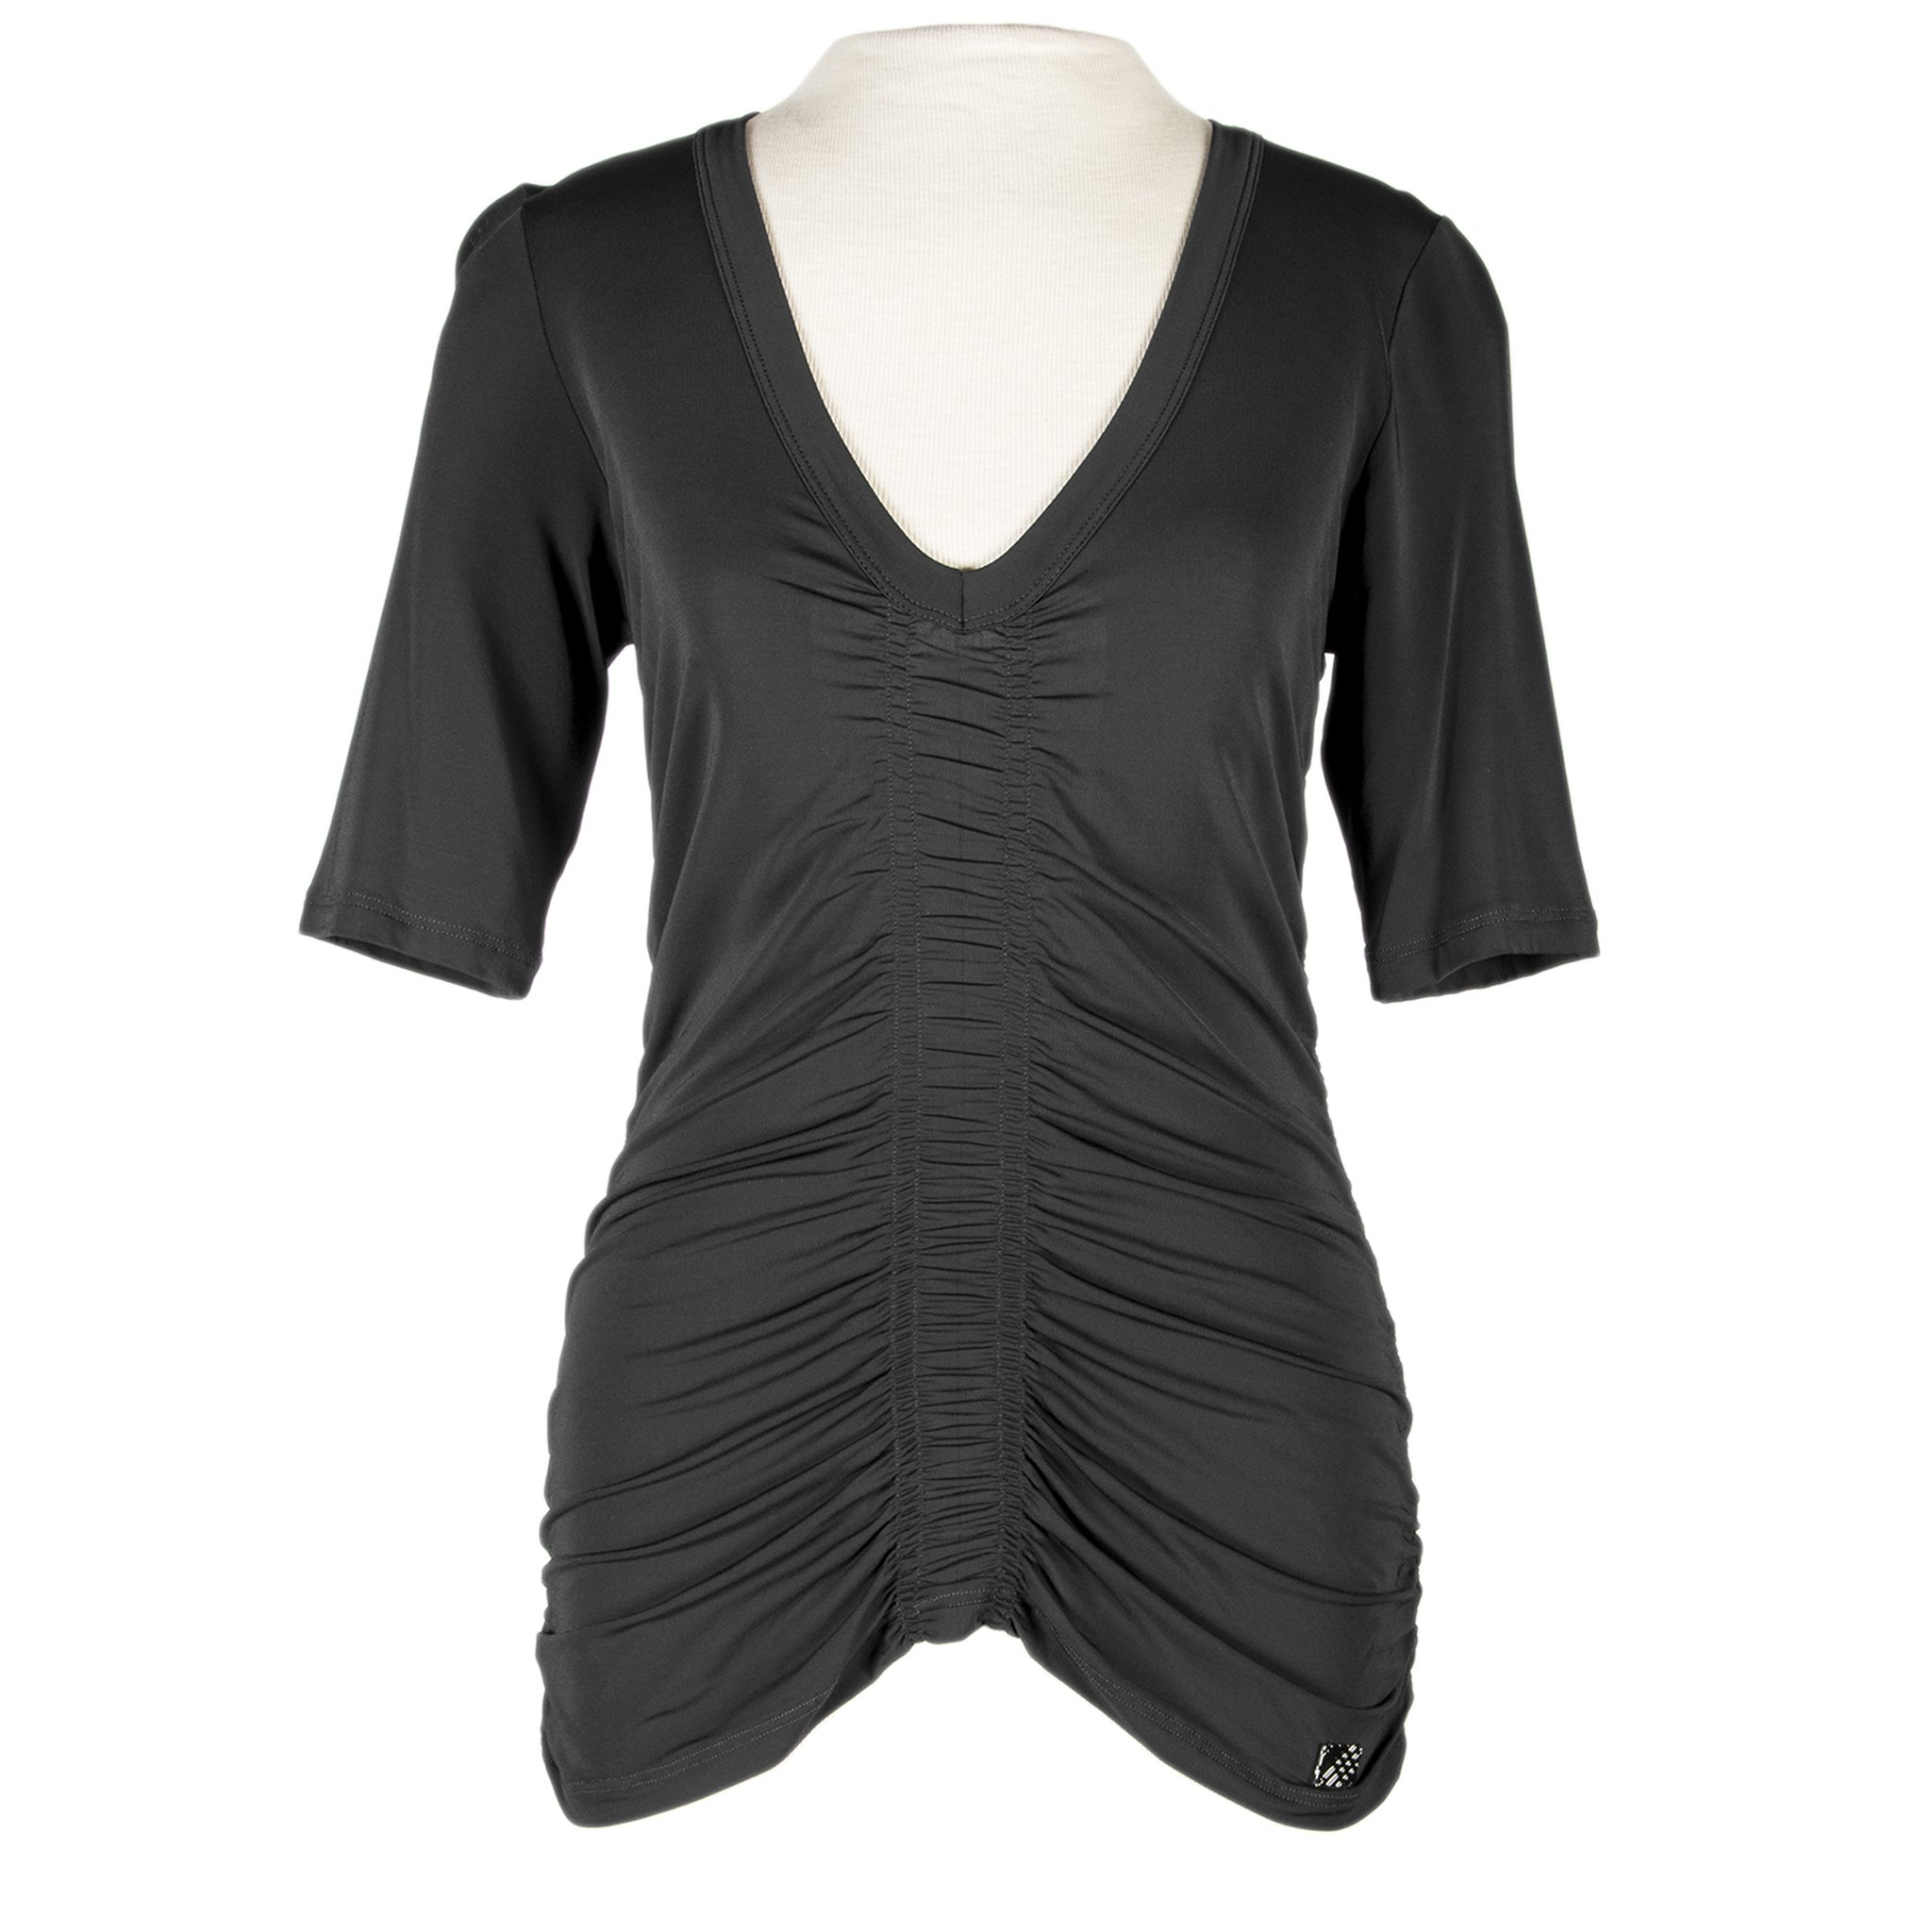 Burberry Women's Ruched Stretch Top Black